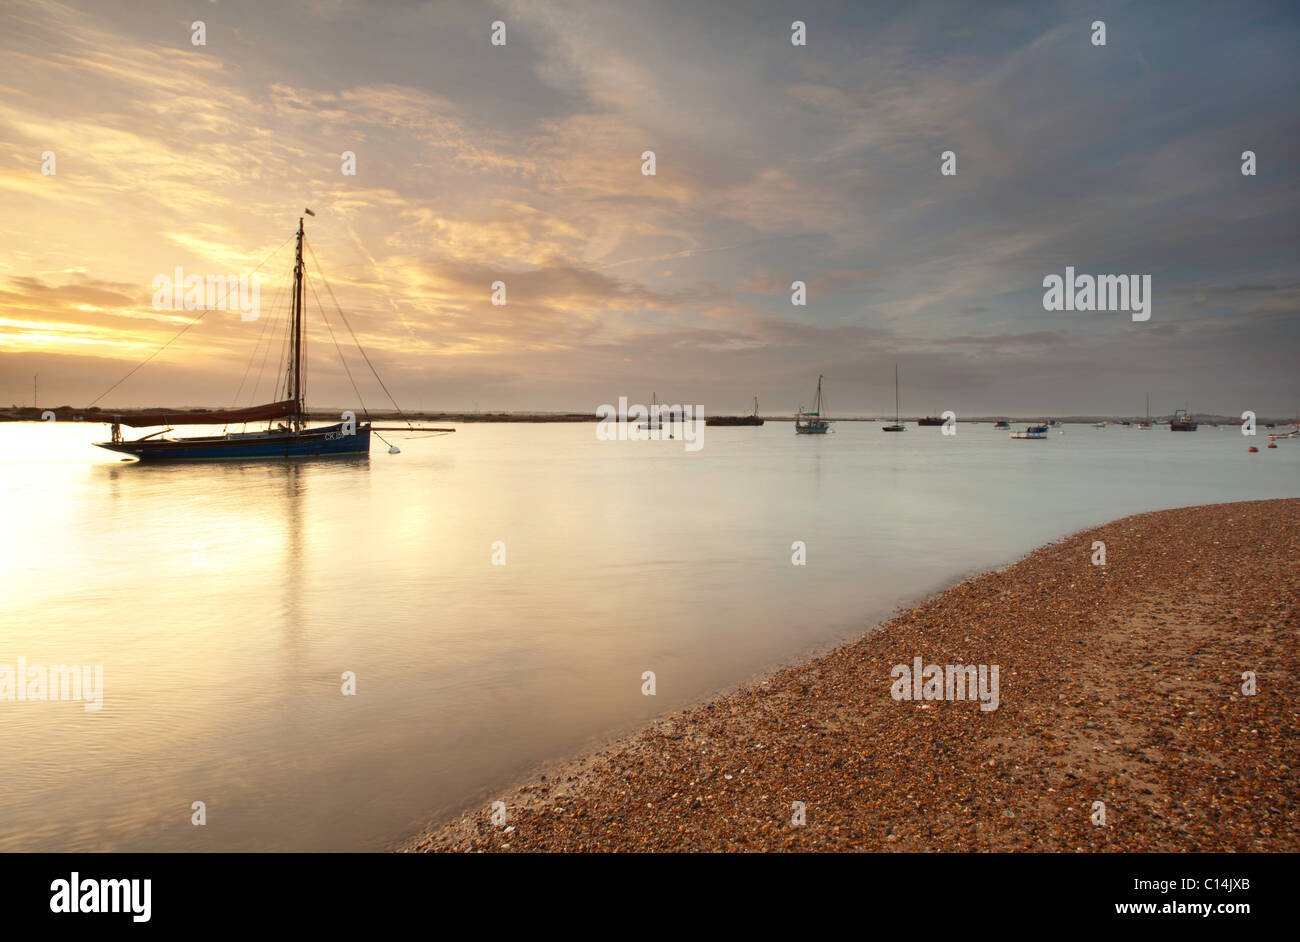 Boats captured at sunset on Mersea Island - Stock Image